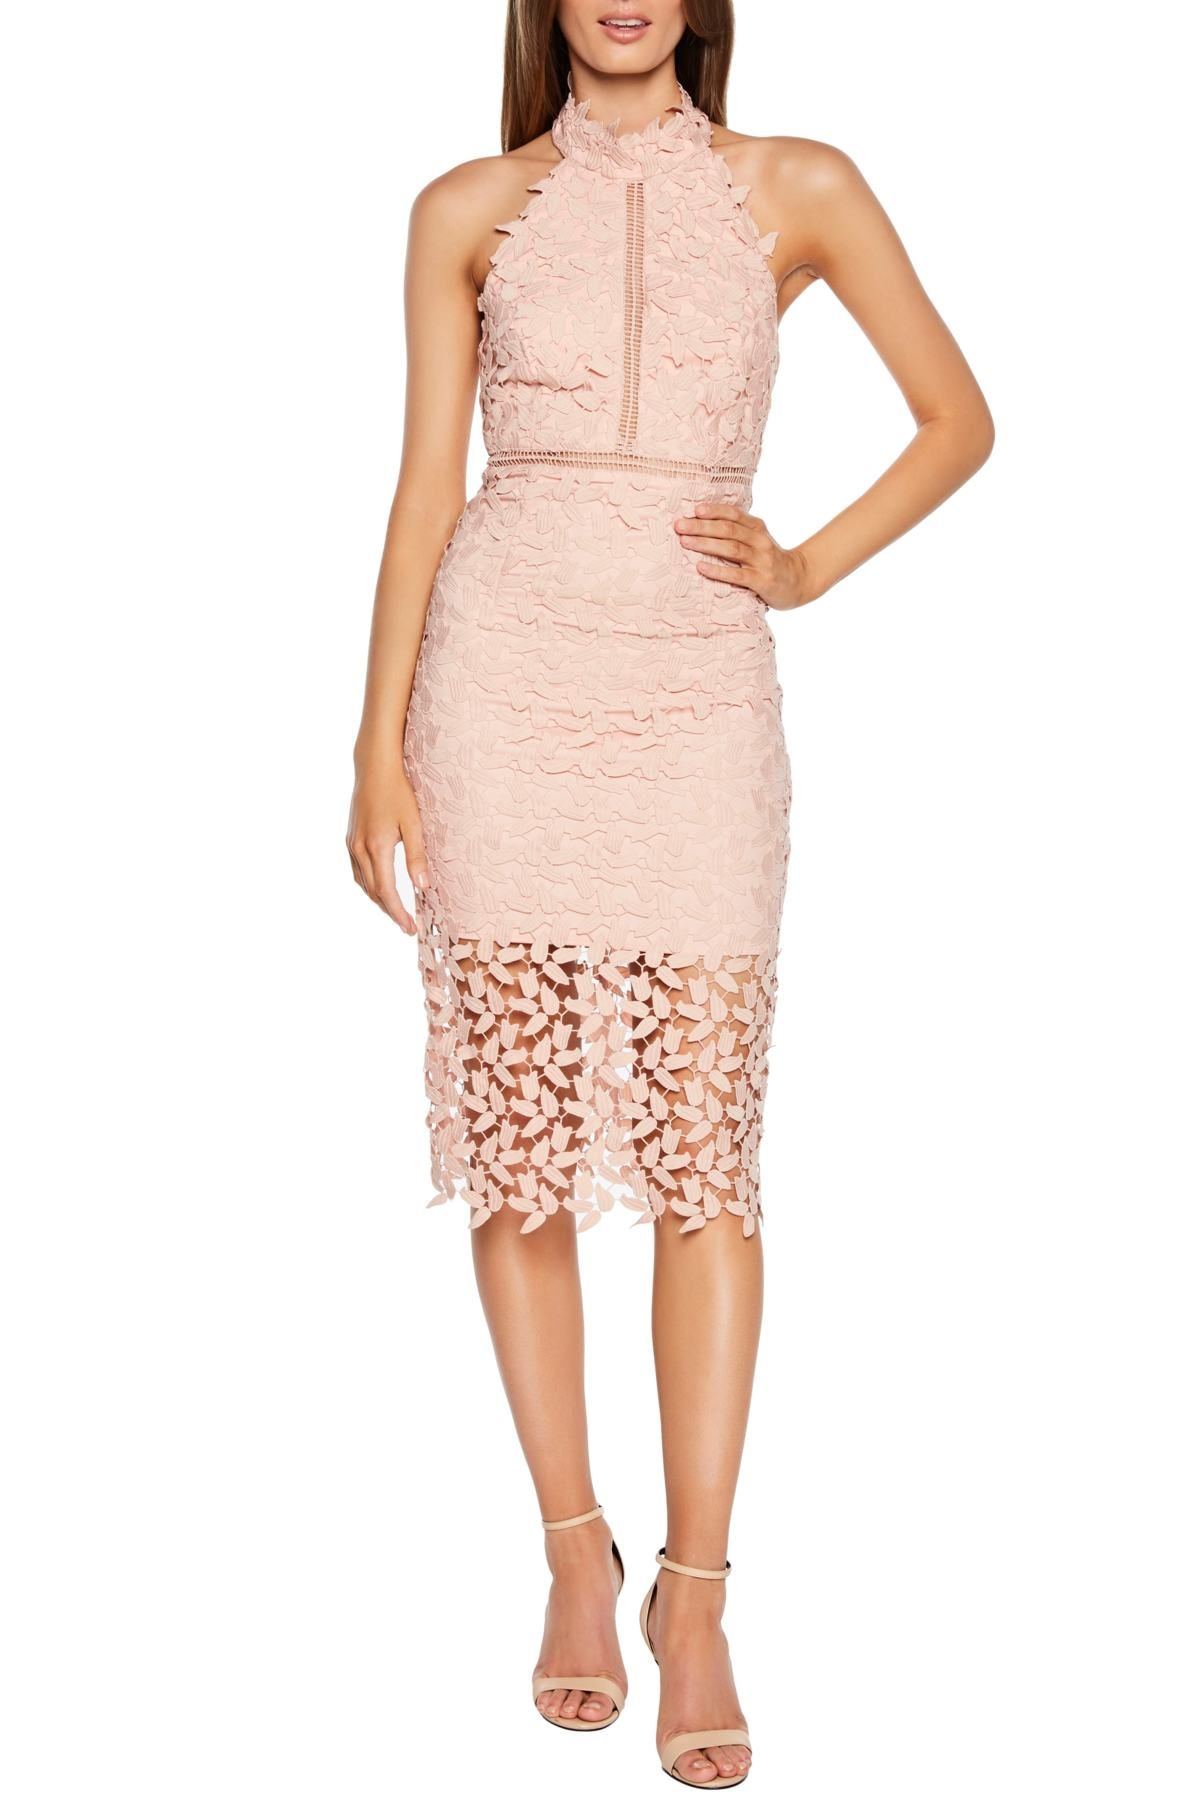 dcae386e Bardot - Gemma Halter Lace Sheath Dress is now 50% off. Free Shipping on  orders over $100.